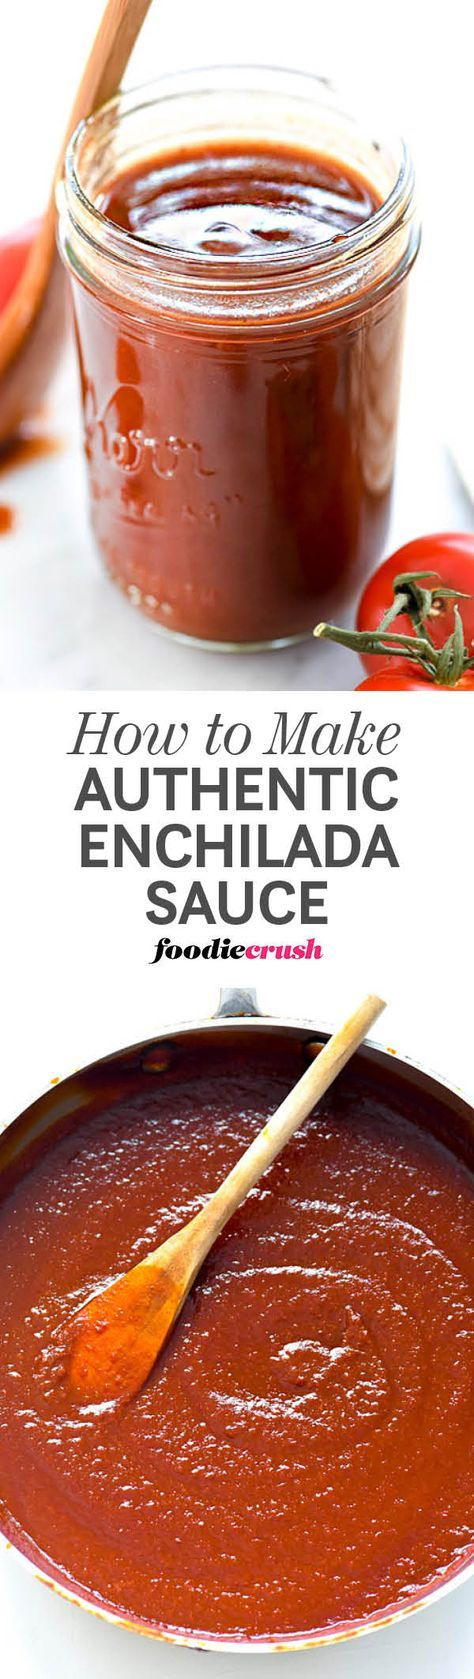 Best 25+ Authentic enchilada sauce ideas only on Pinterest ...